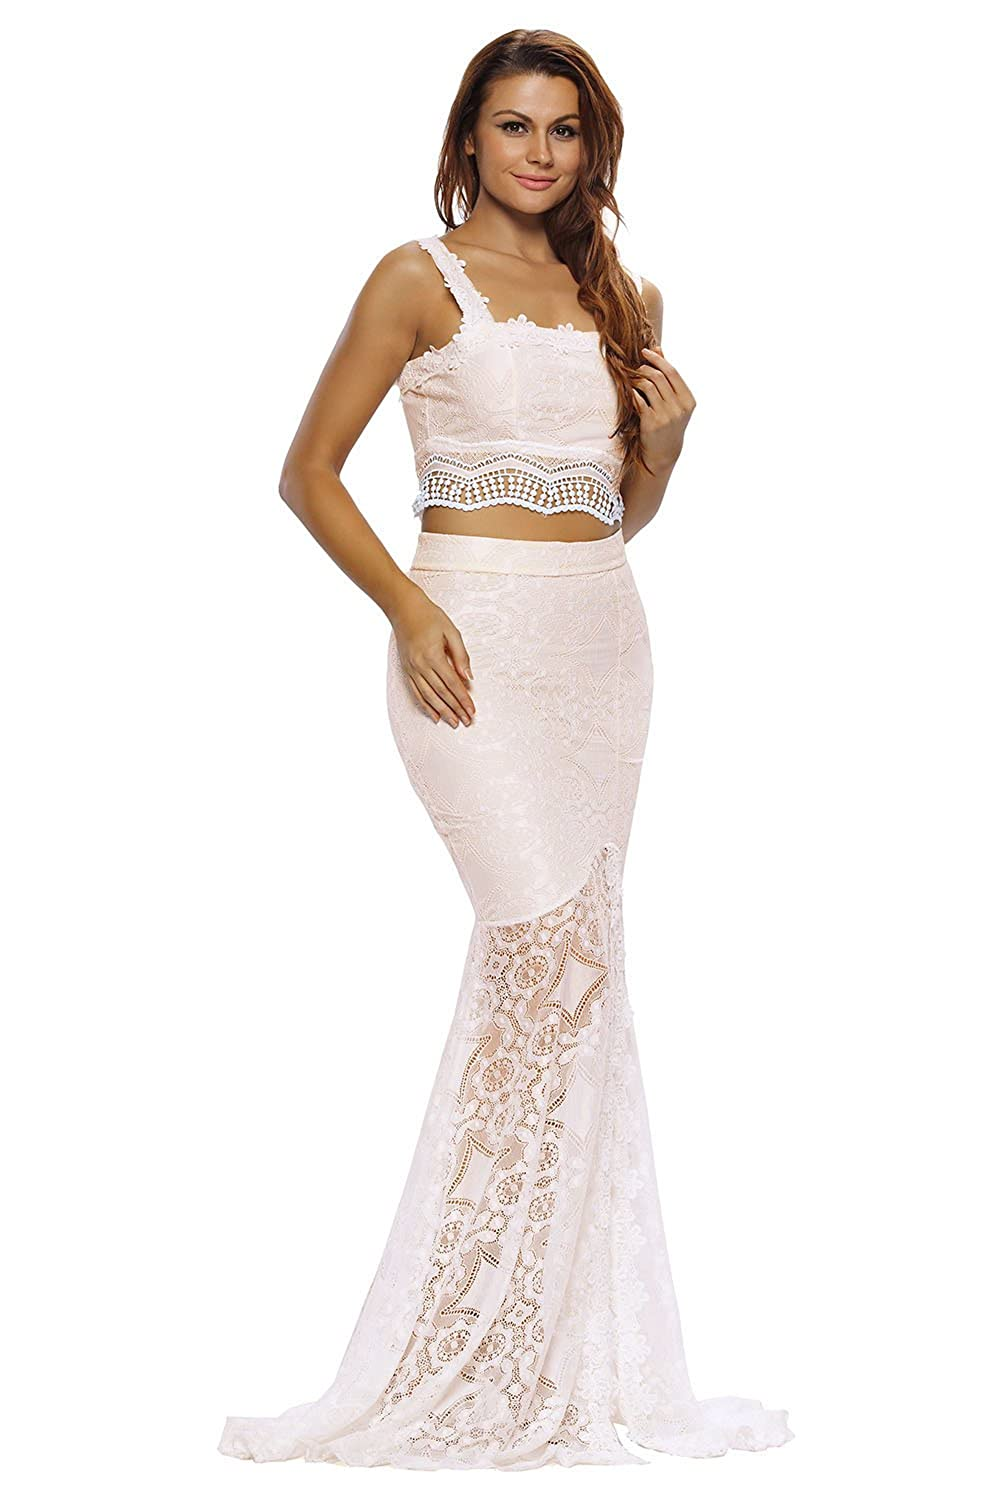 df4bced10 Crop Top Maxi Skirt Set - Sexy Creamy Lace Crop Top Maxi Skirt Set For  Women (M(US 8-10)): Amazon.co.uk: Clothing